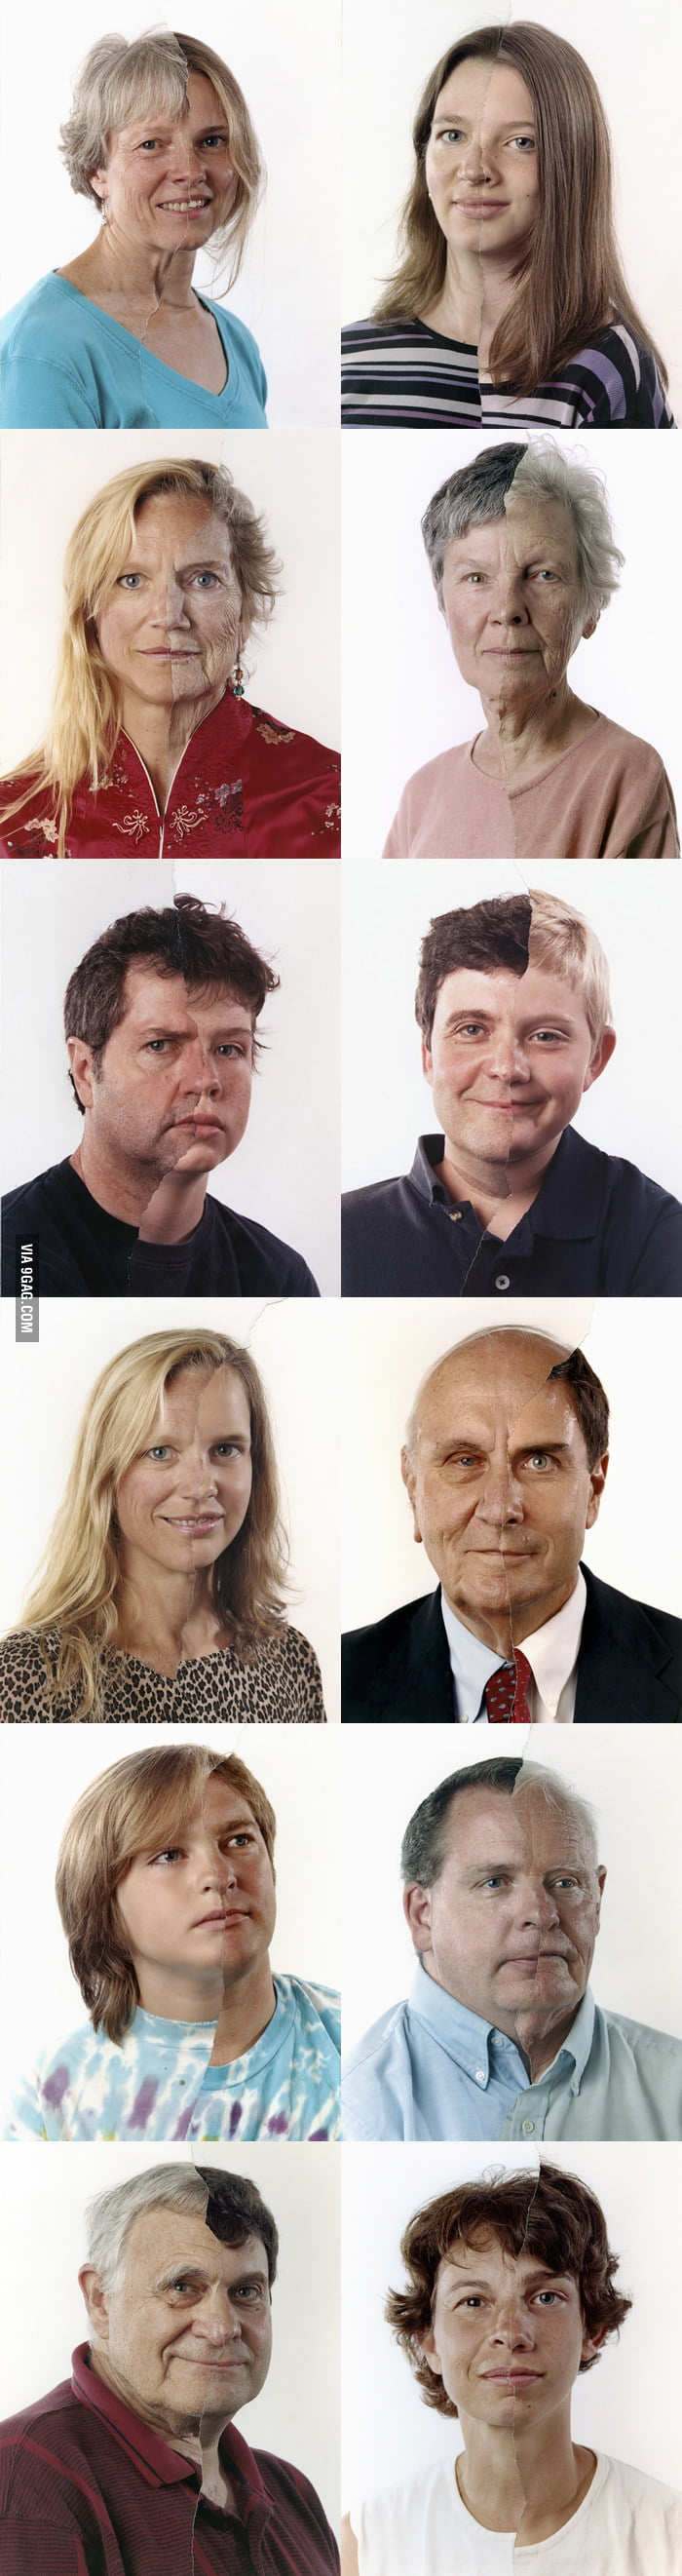 Genetics are amazing.